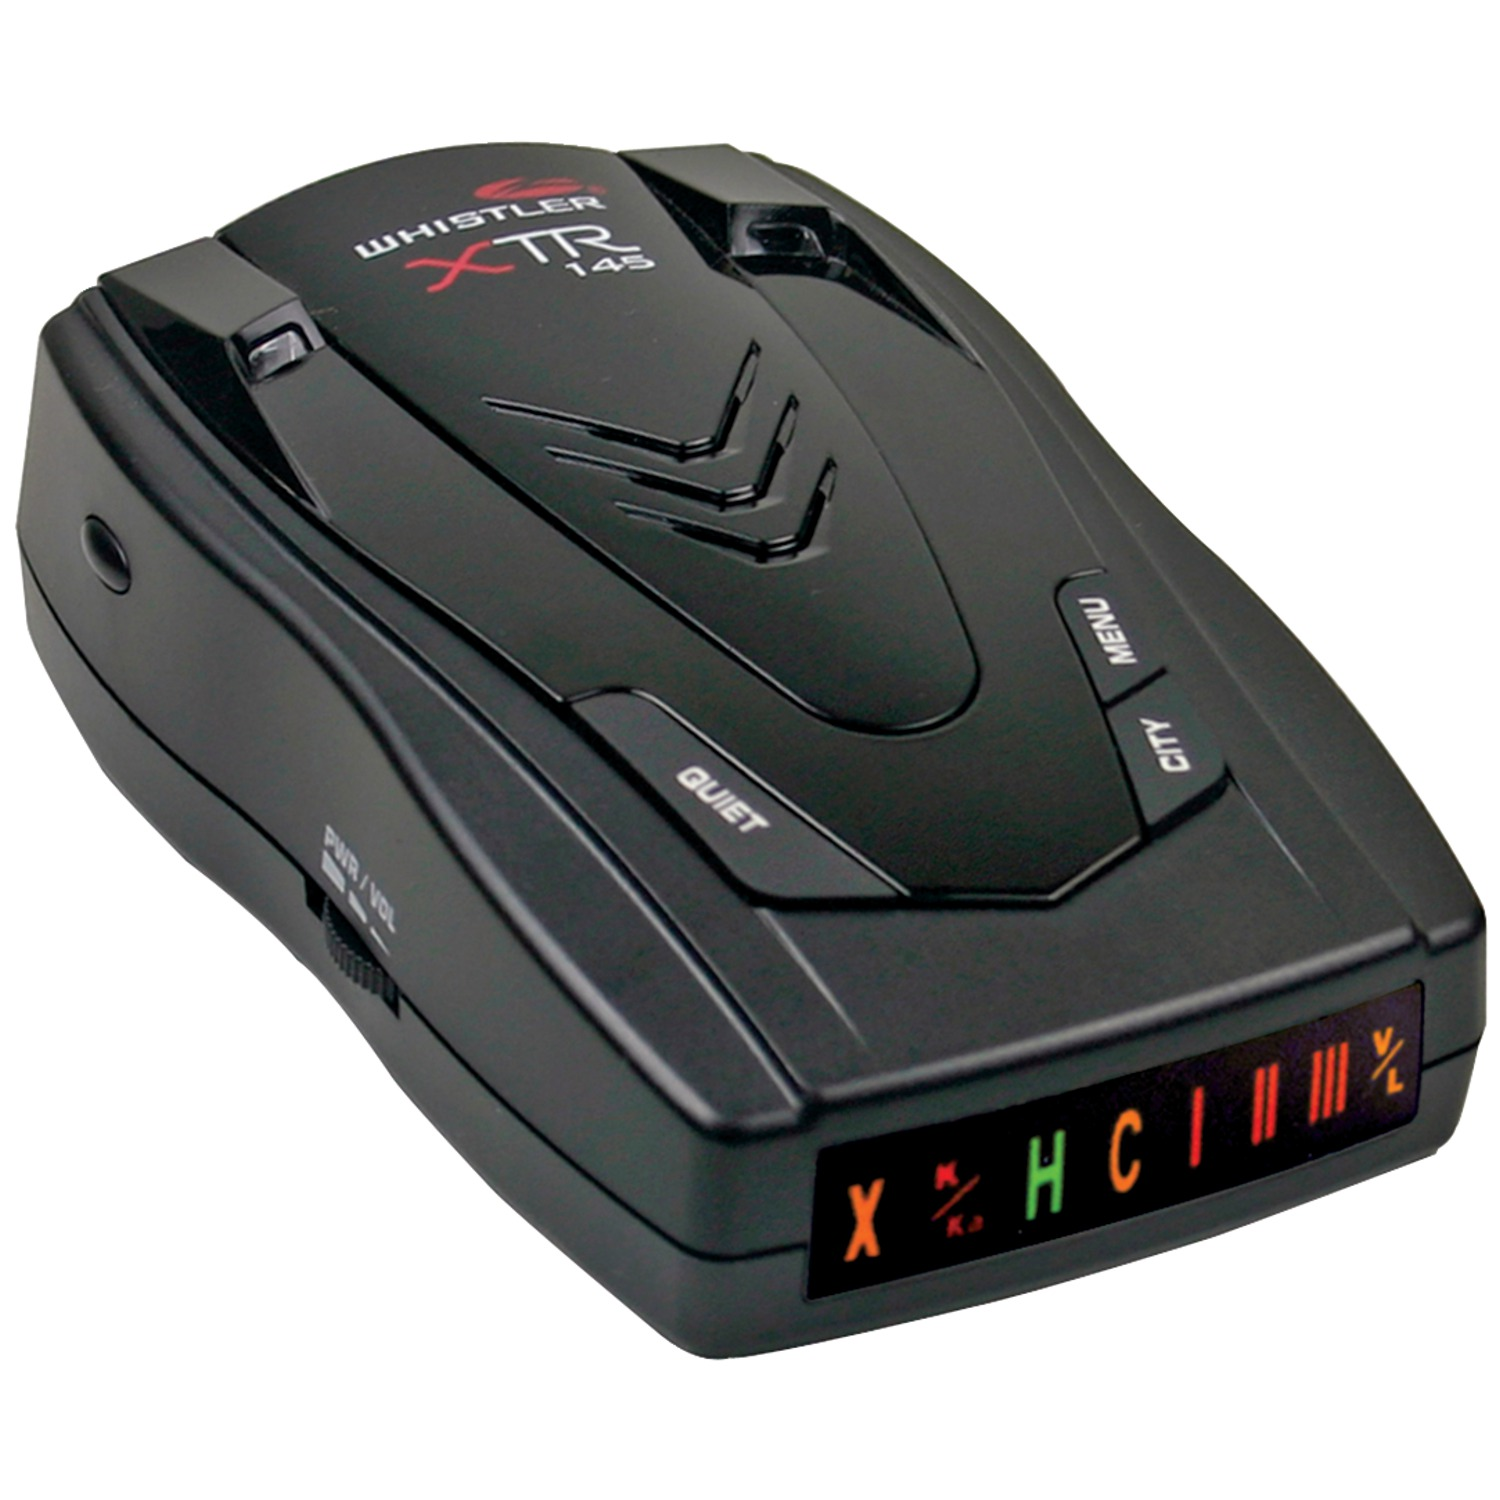 Sep 21,  · 1 Best of them all – Escort Max Radar Detector Escort Max is a very capable radar detector that offers too many features. Though the price is high, but it makes up for it when compared with the amazing and numerous features it has to .